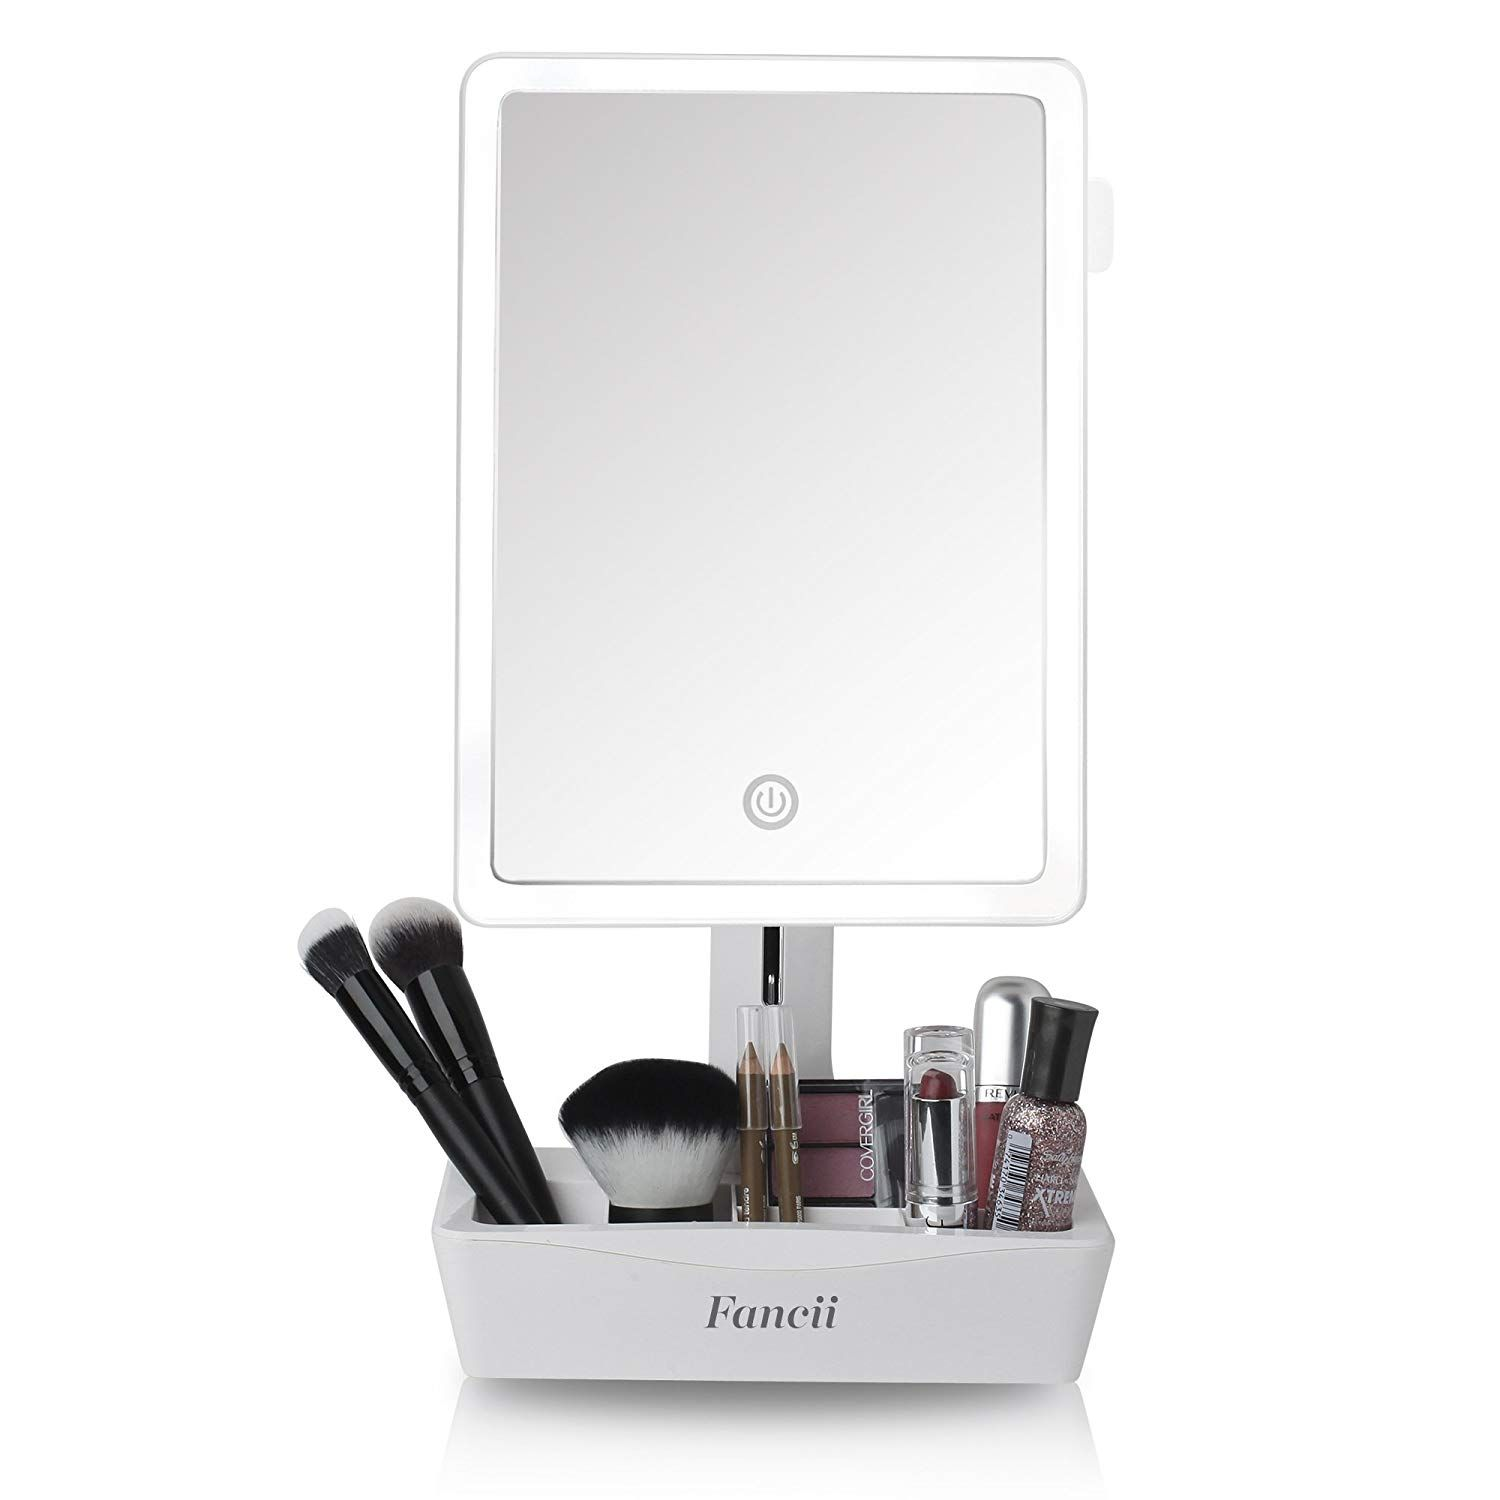 Fancii Led Lighted Large Vanity Makeup Mirror With 10x Magnifying Mirror Dimmable Natural Li Magnifying Mirror Makeup Mirror Makeup Vanity Mirror With Lights